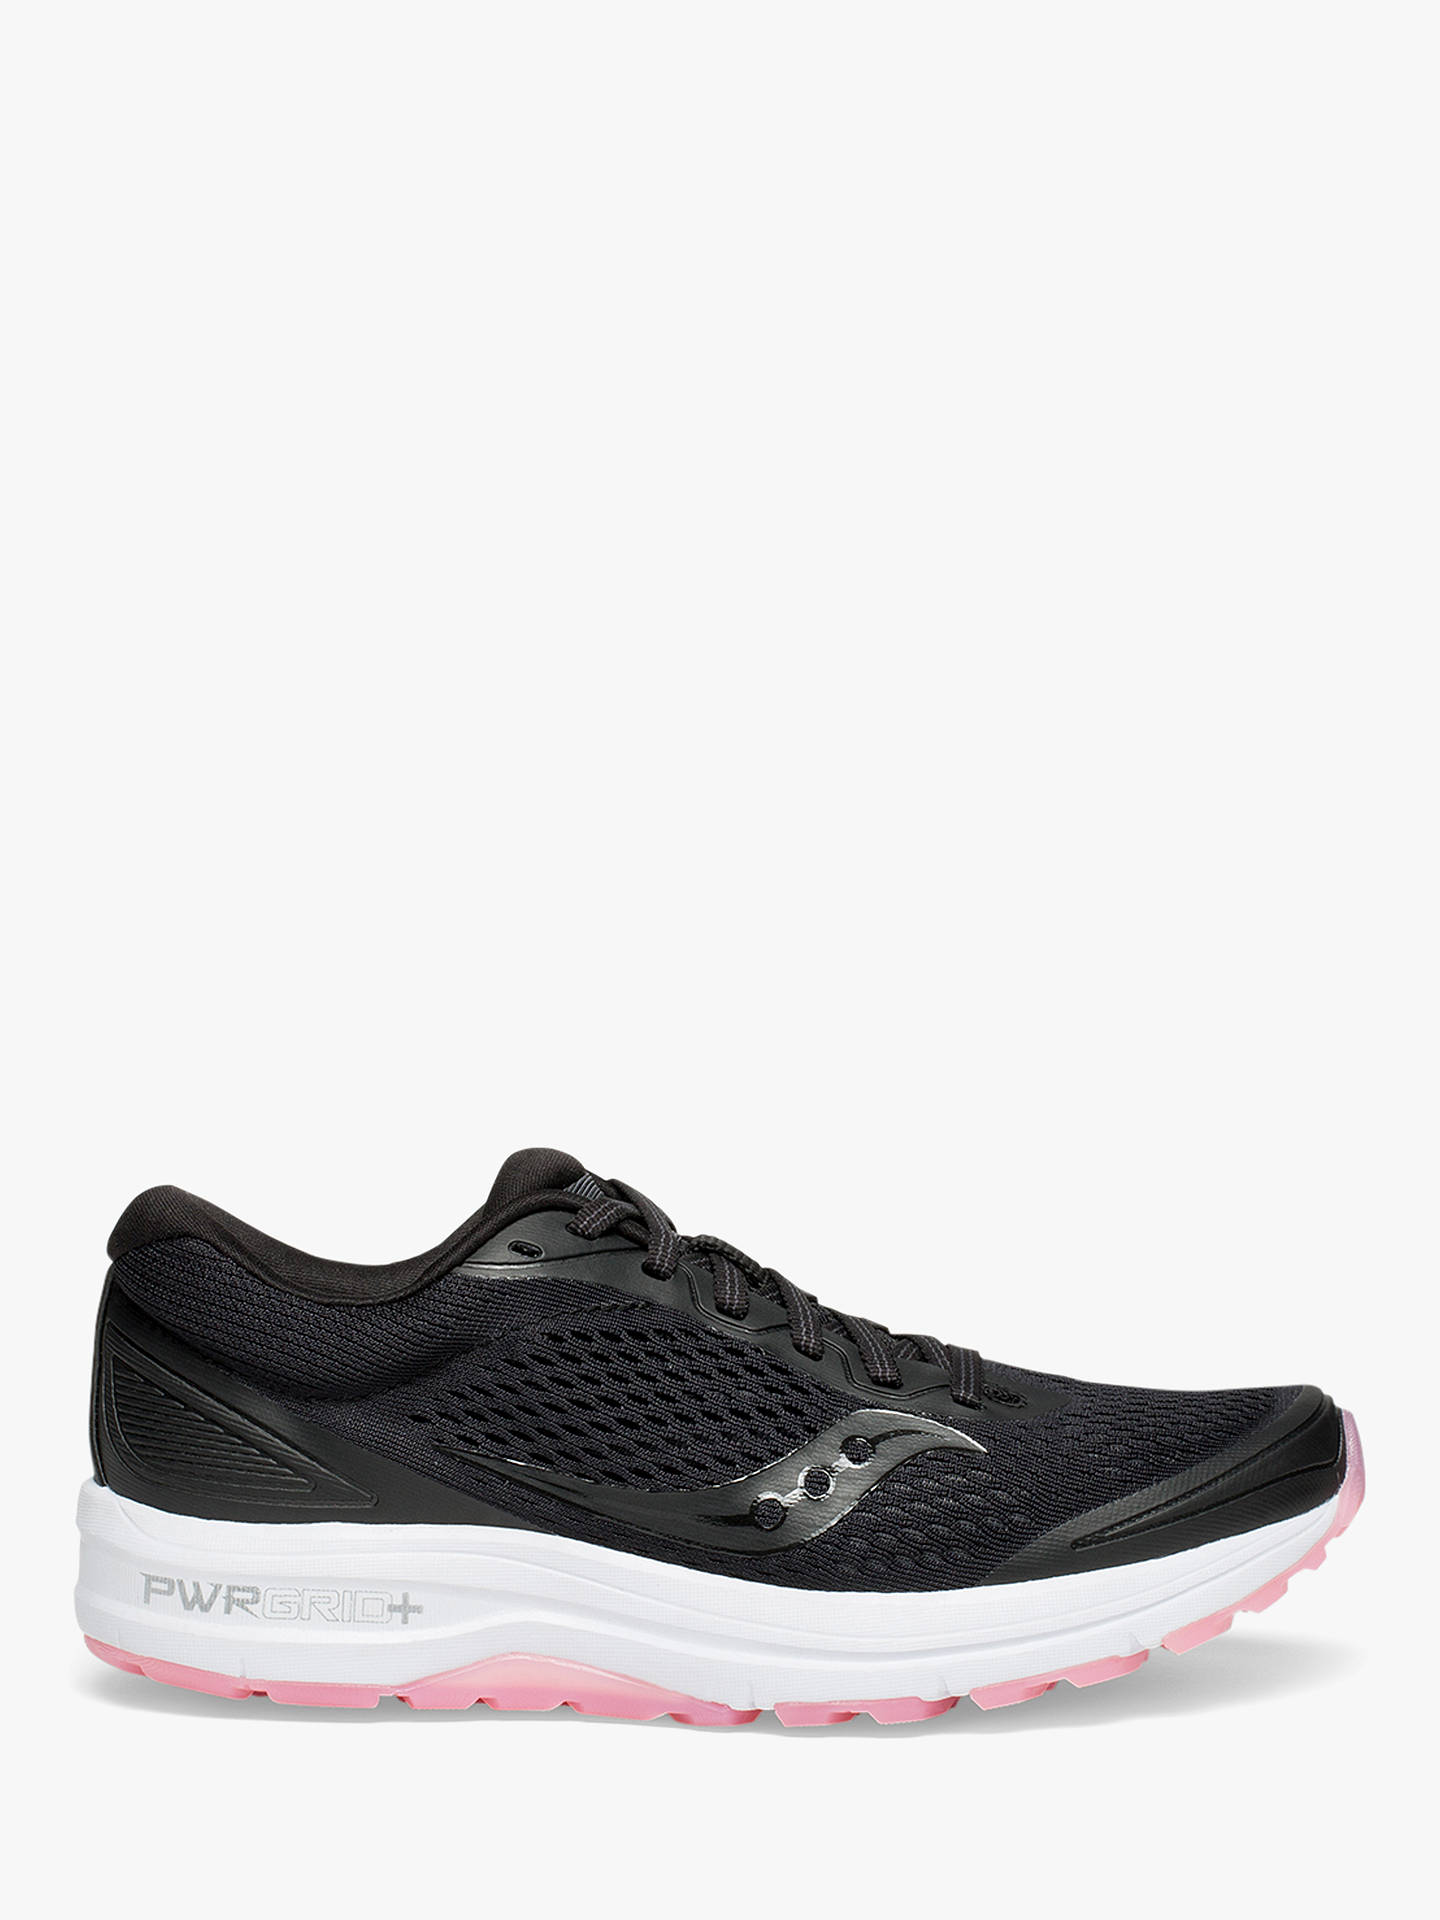 66af20a900 Saucony Clarion Women's Running Shoes, Black